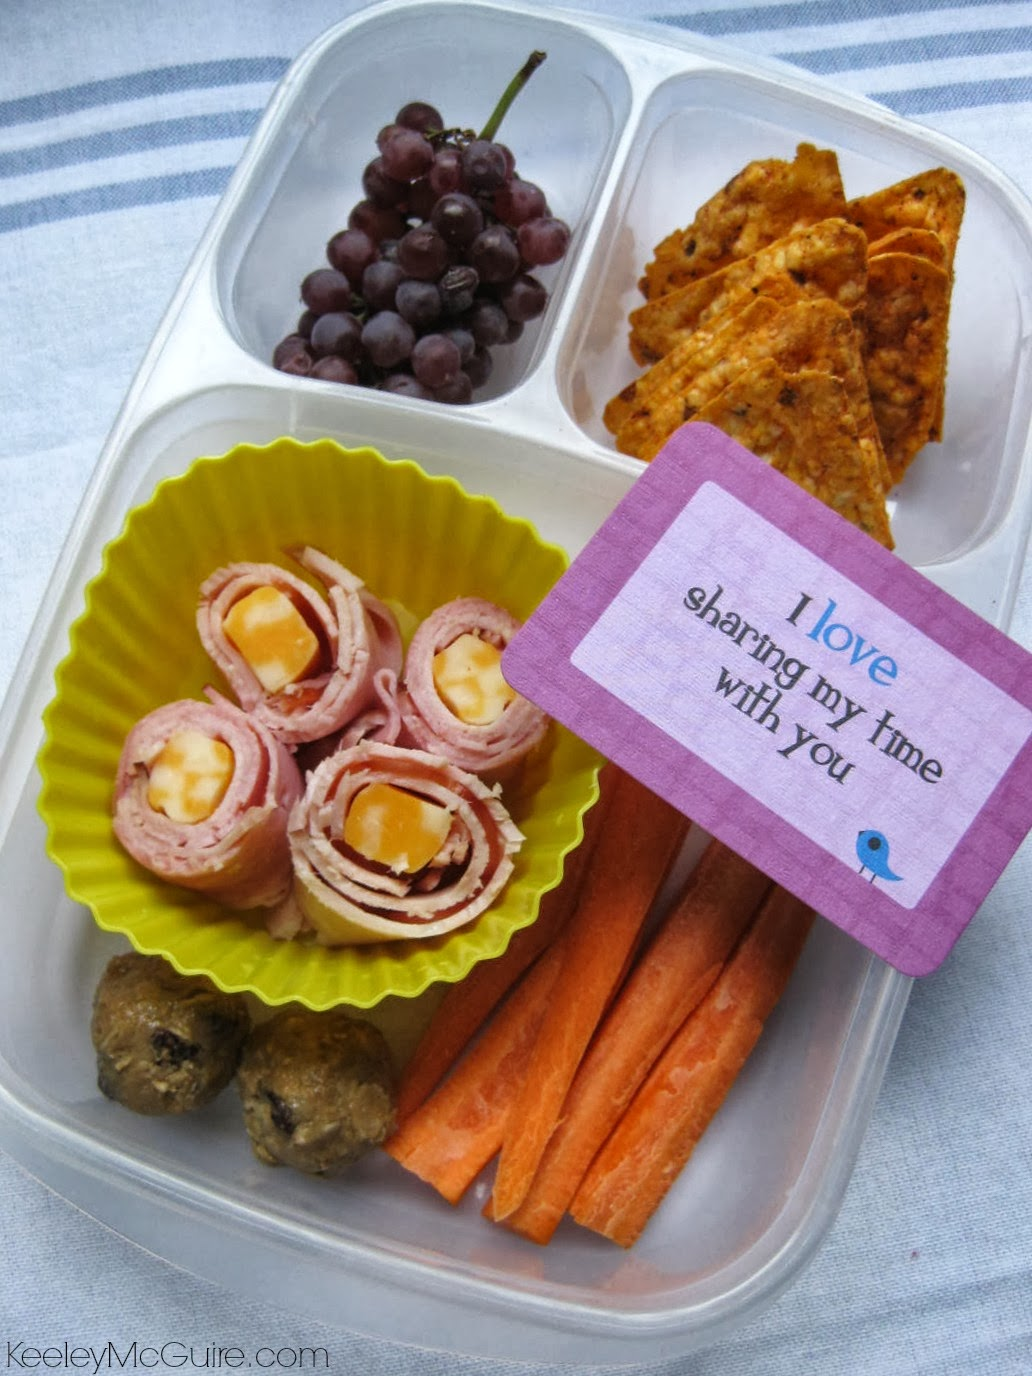 Gluten Free Allergy Friendly Lunch Made Easy OVER 25 Box Ideas